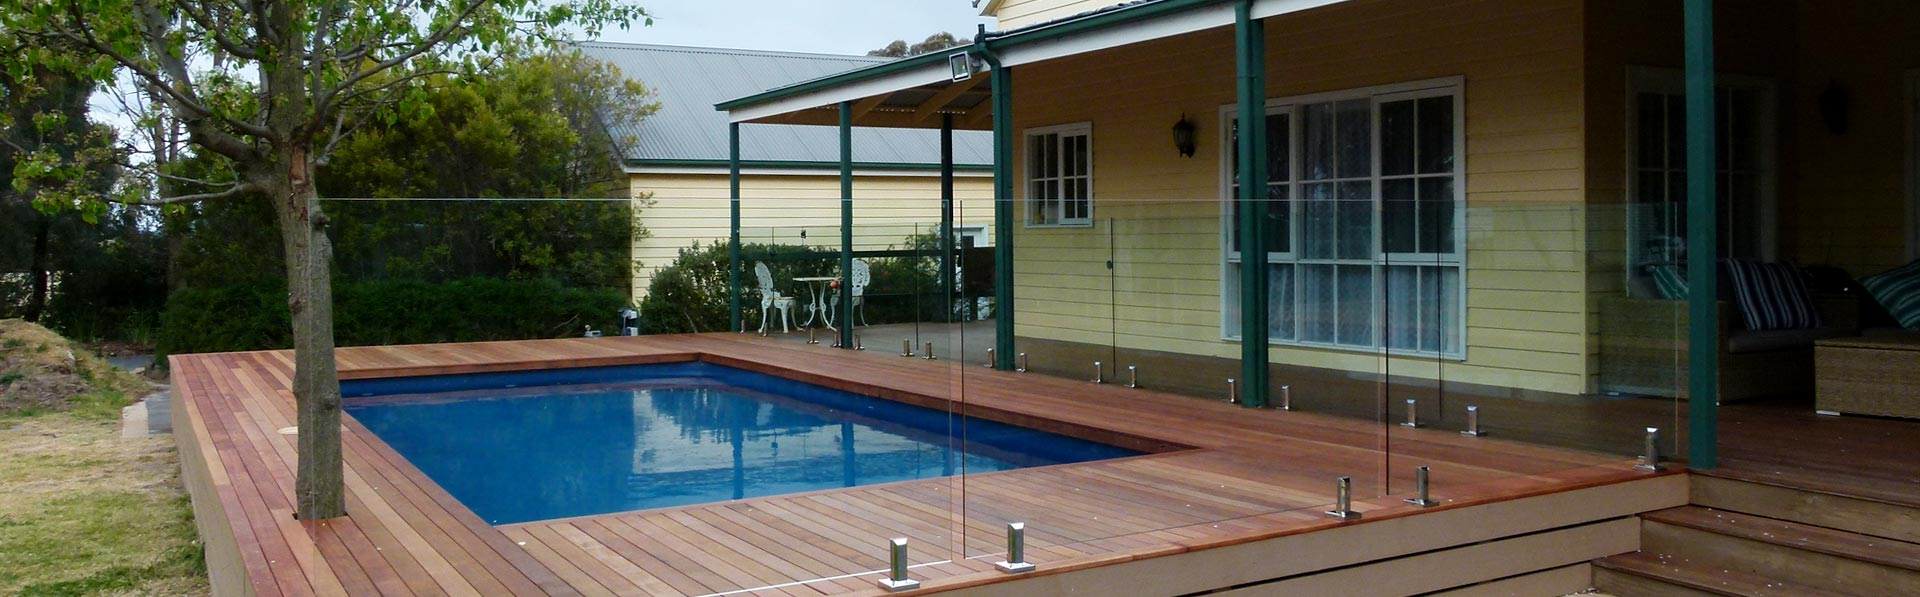 brightwaters above ground pool - Square Above Ground Pool